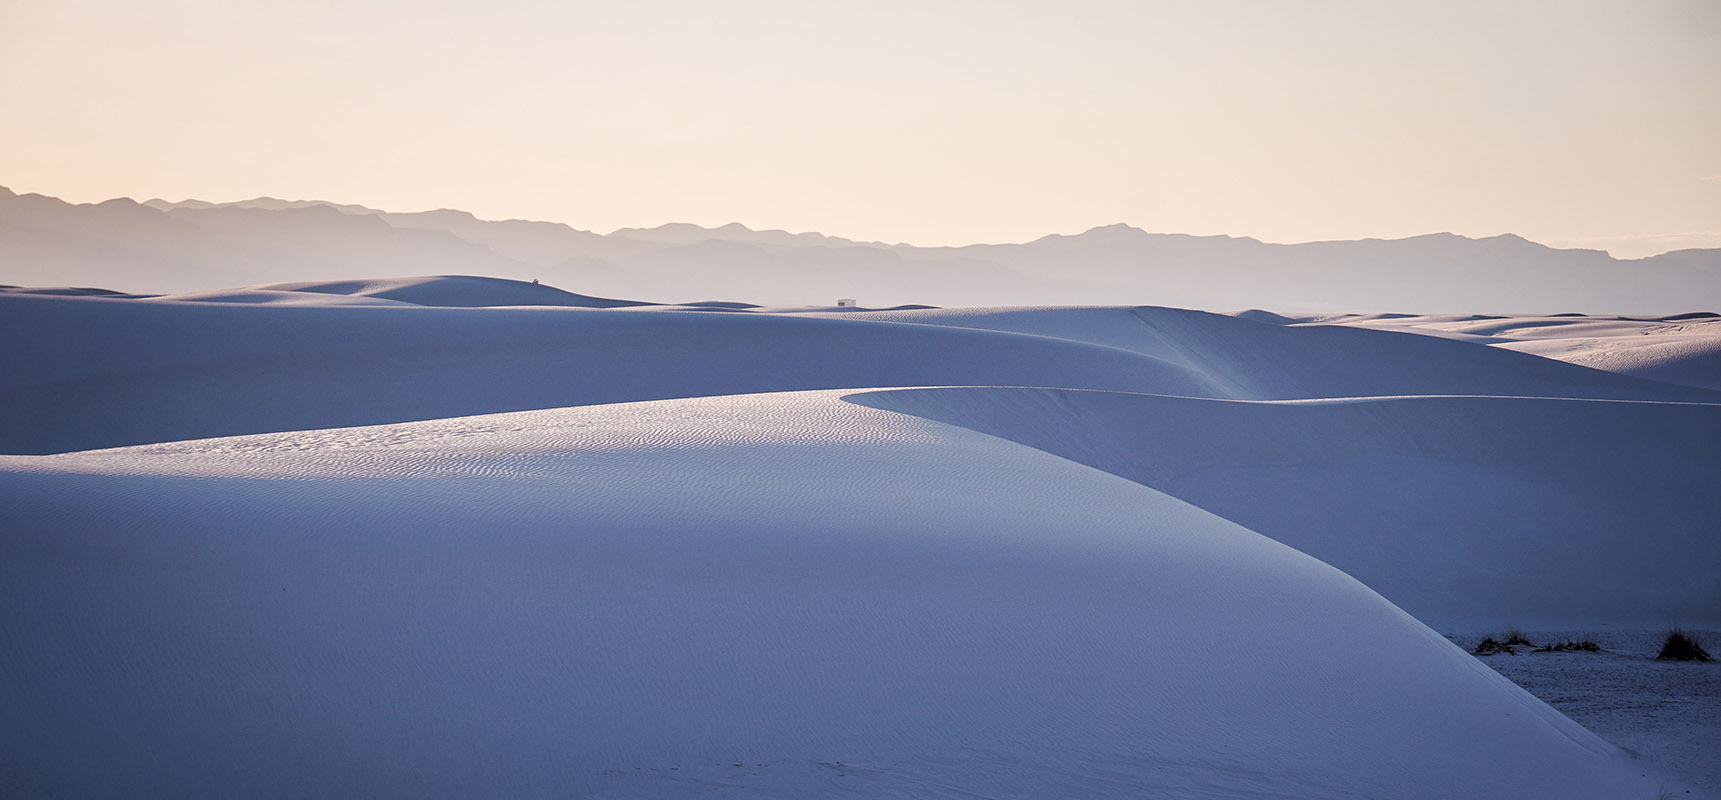 White Sands national monument New Mexico USA Road trip Sunset